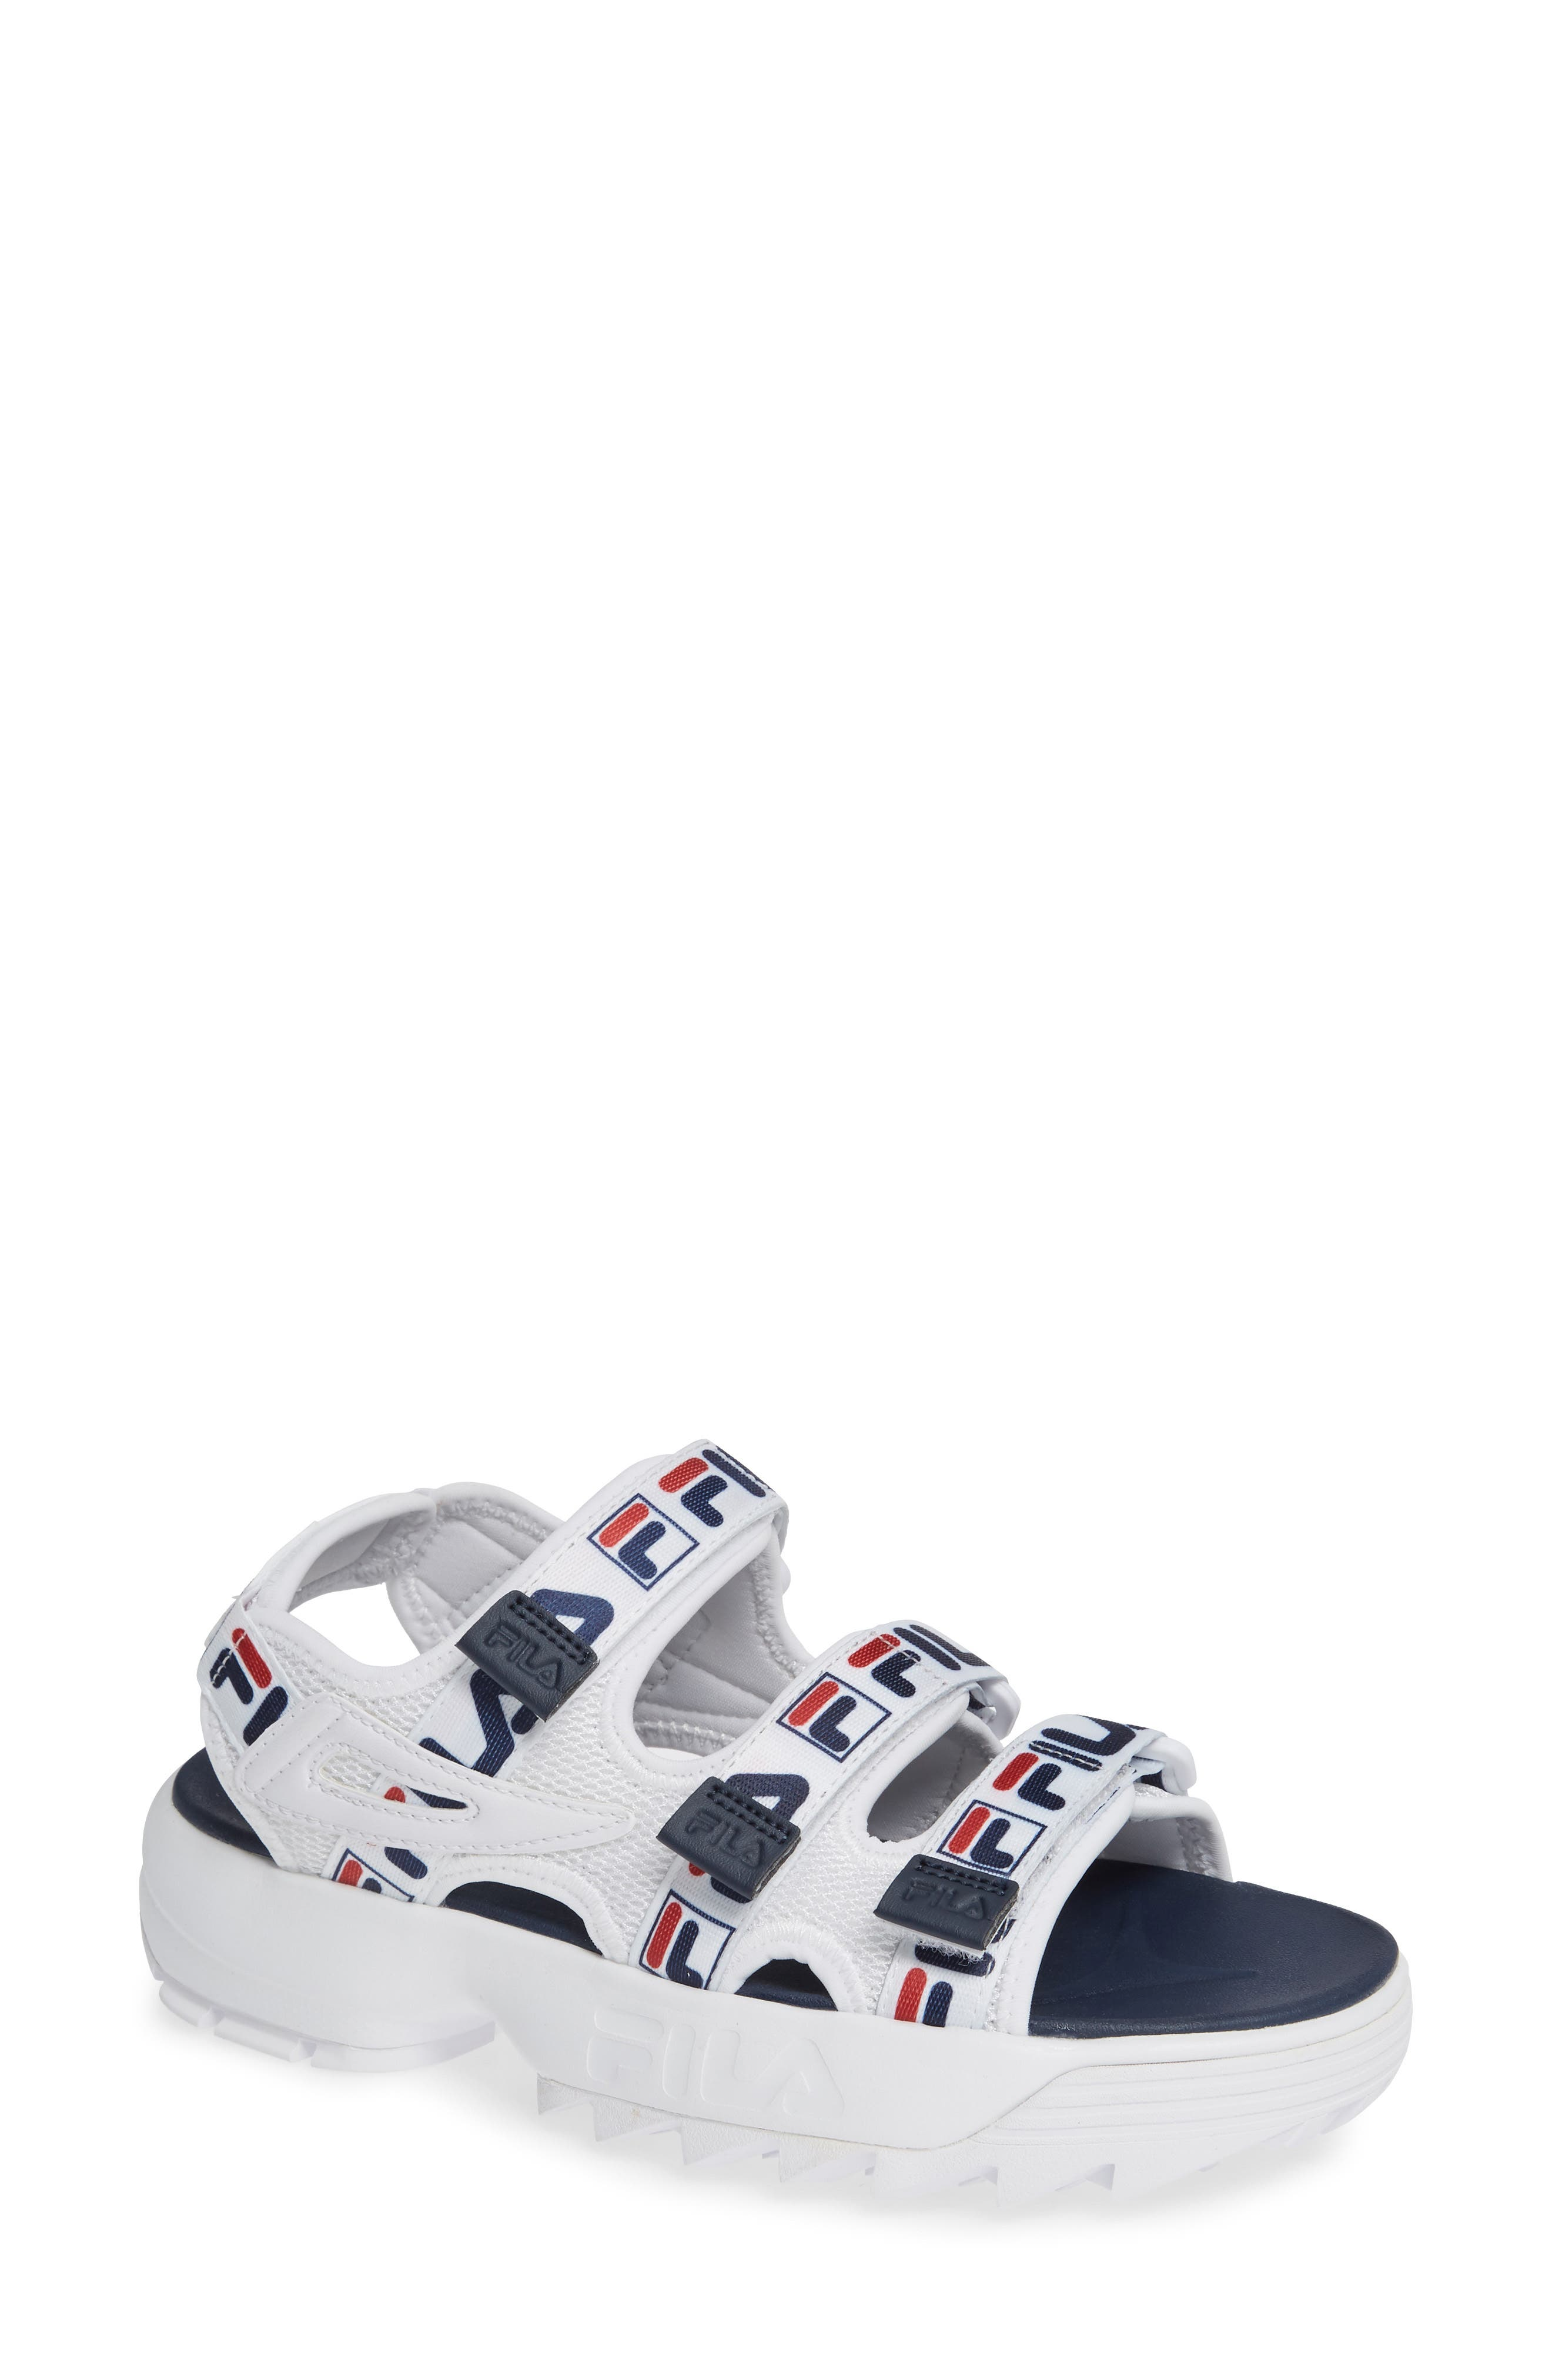 Disruptor Sandal,                         Main,                         color, WHITE/ FILA NAVY